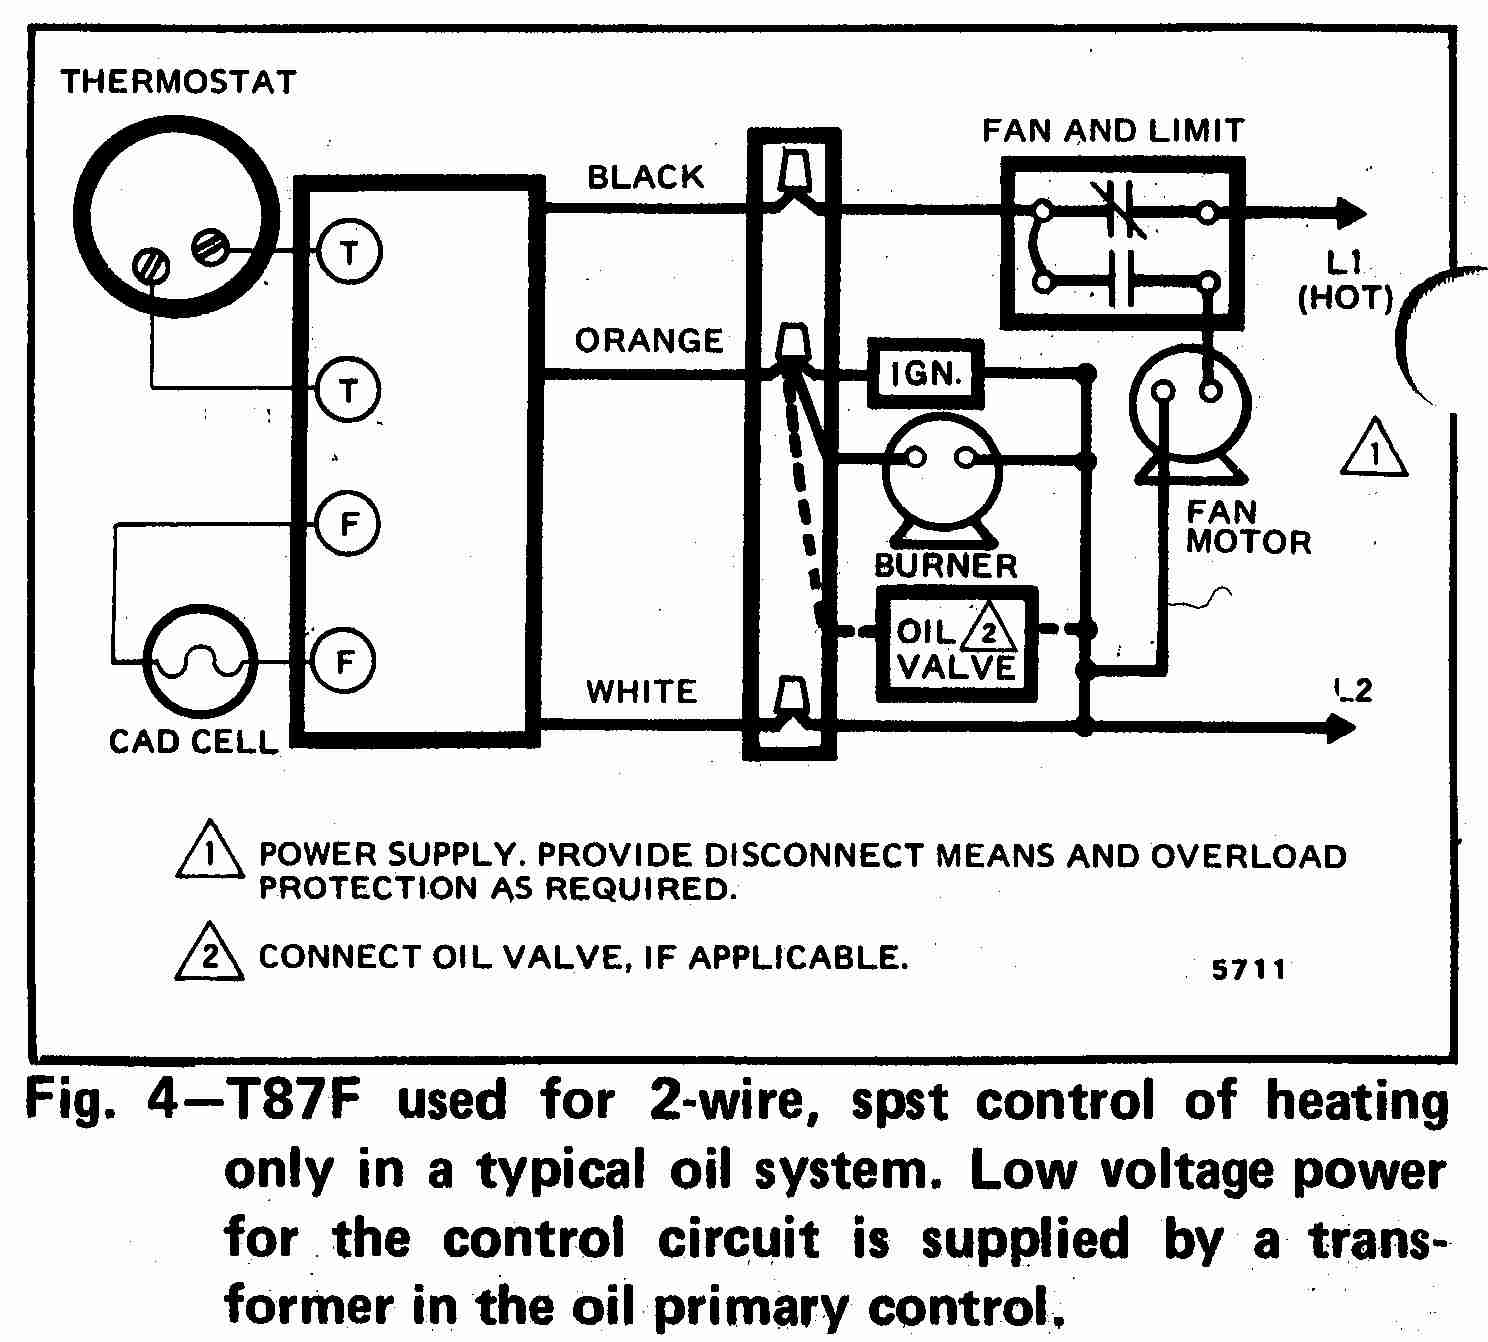 TT_T87F_0002_2W_DJF room thermostat wiring diagrams for hvac systems imit boiler thermostat wiring diagram at sewacar.co